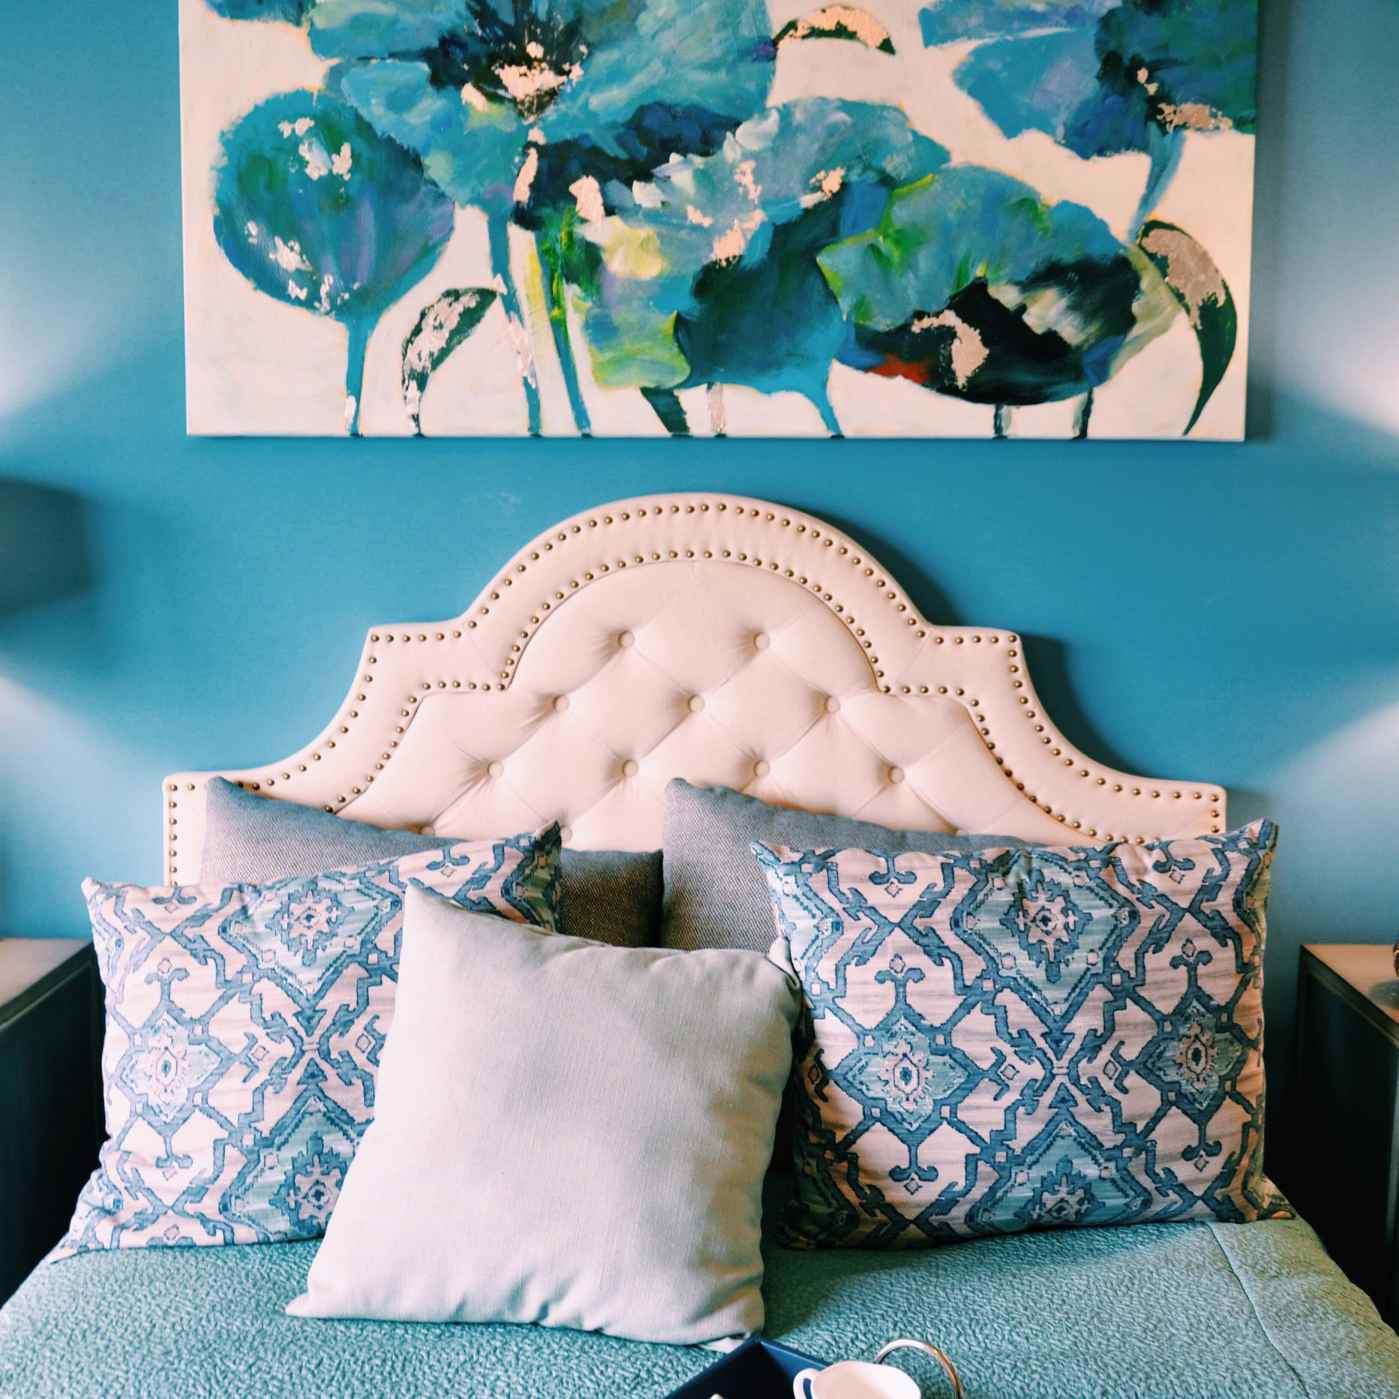 10 Ways to Transform a Boring Bedroom